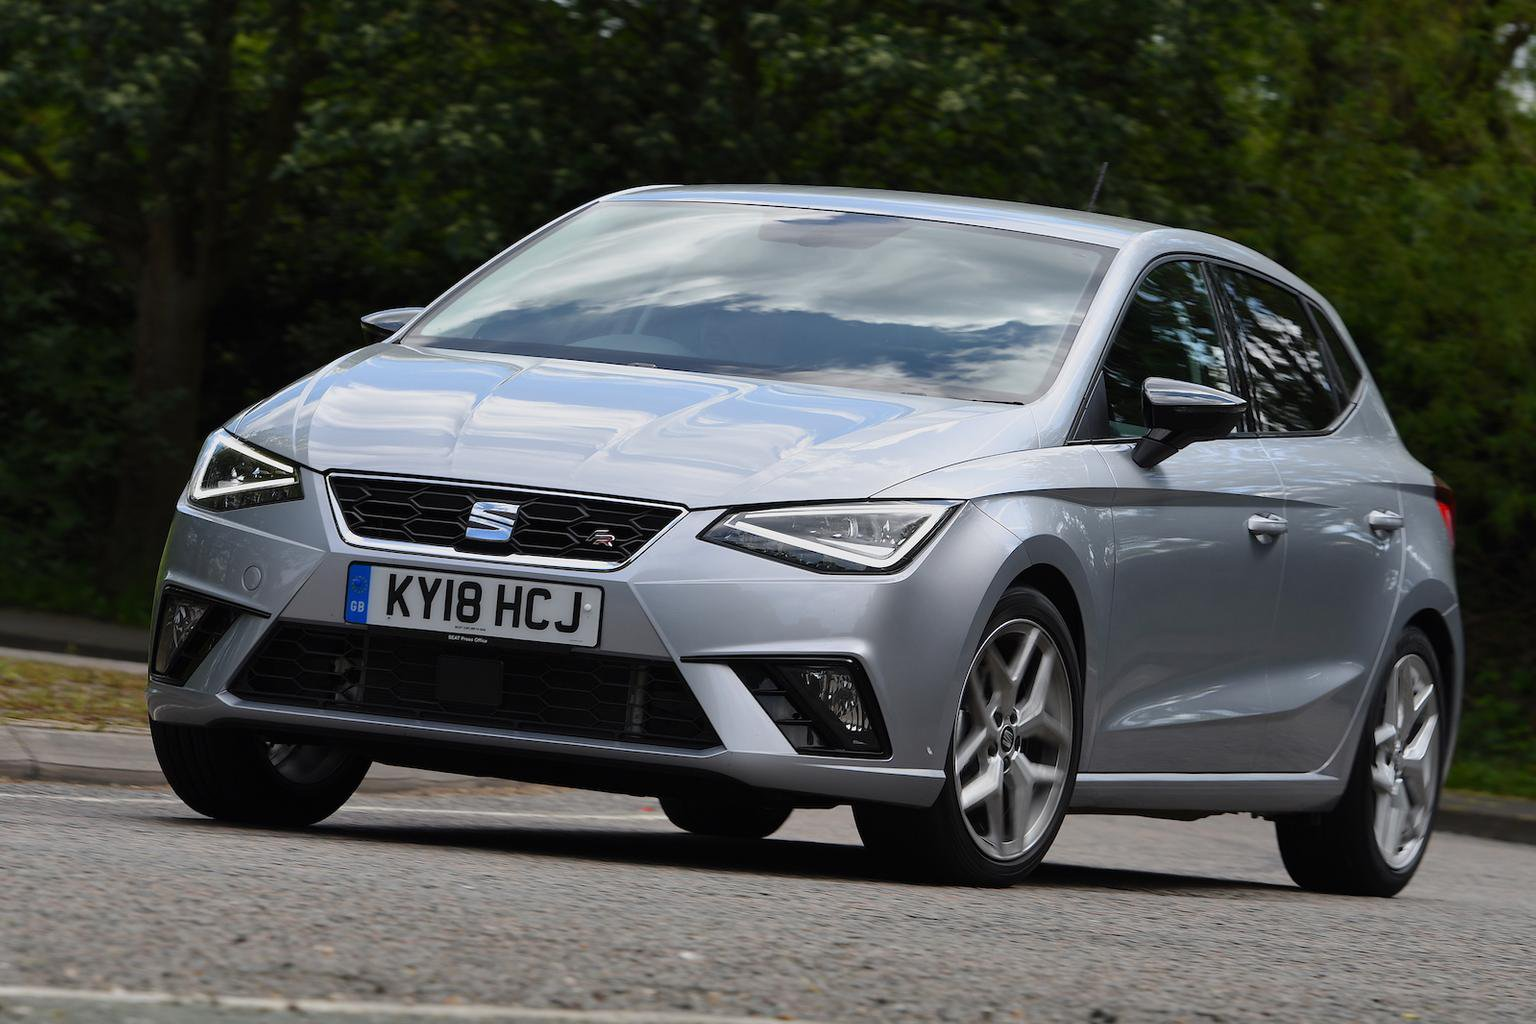 2018 Seat Ibiza 1.6 TDI 95 review – price, specs, release date